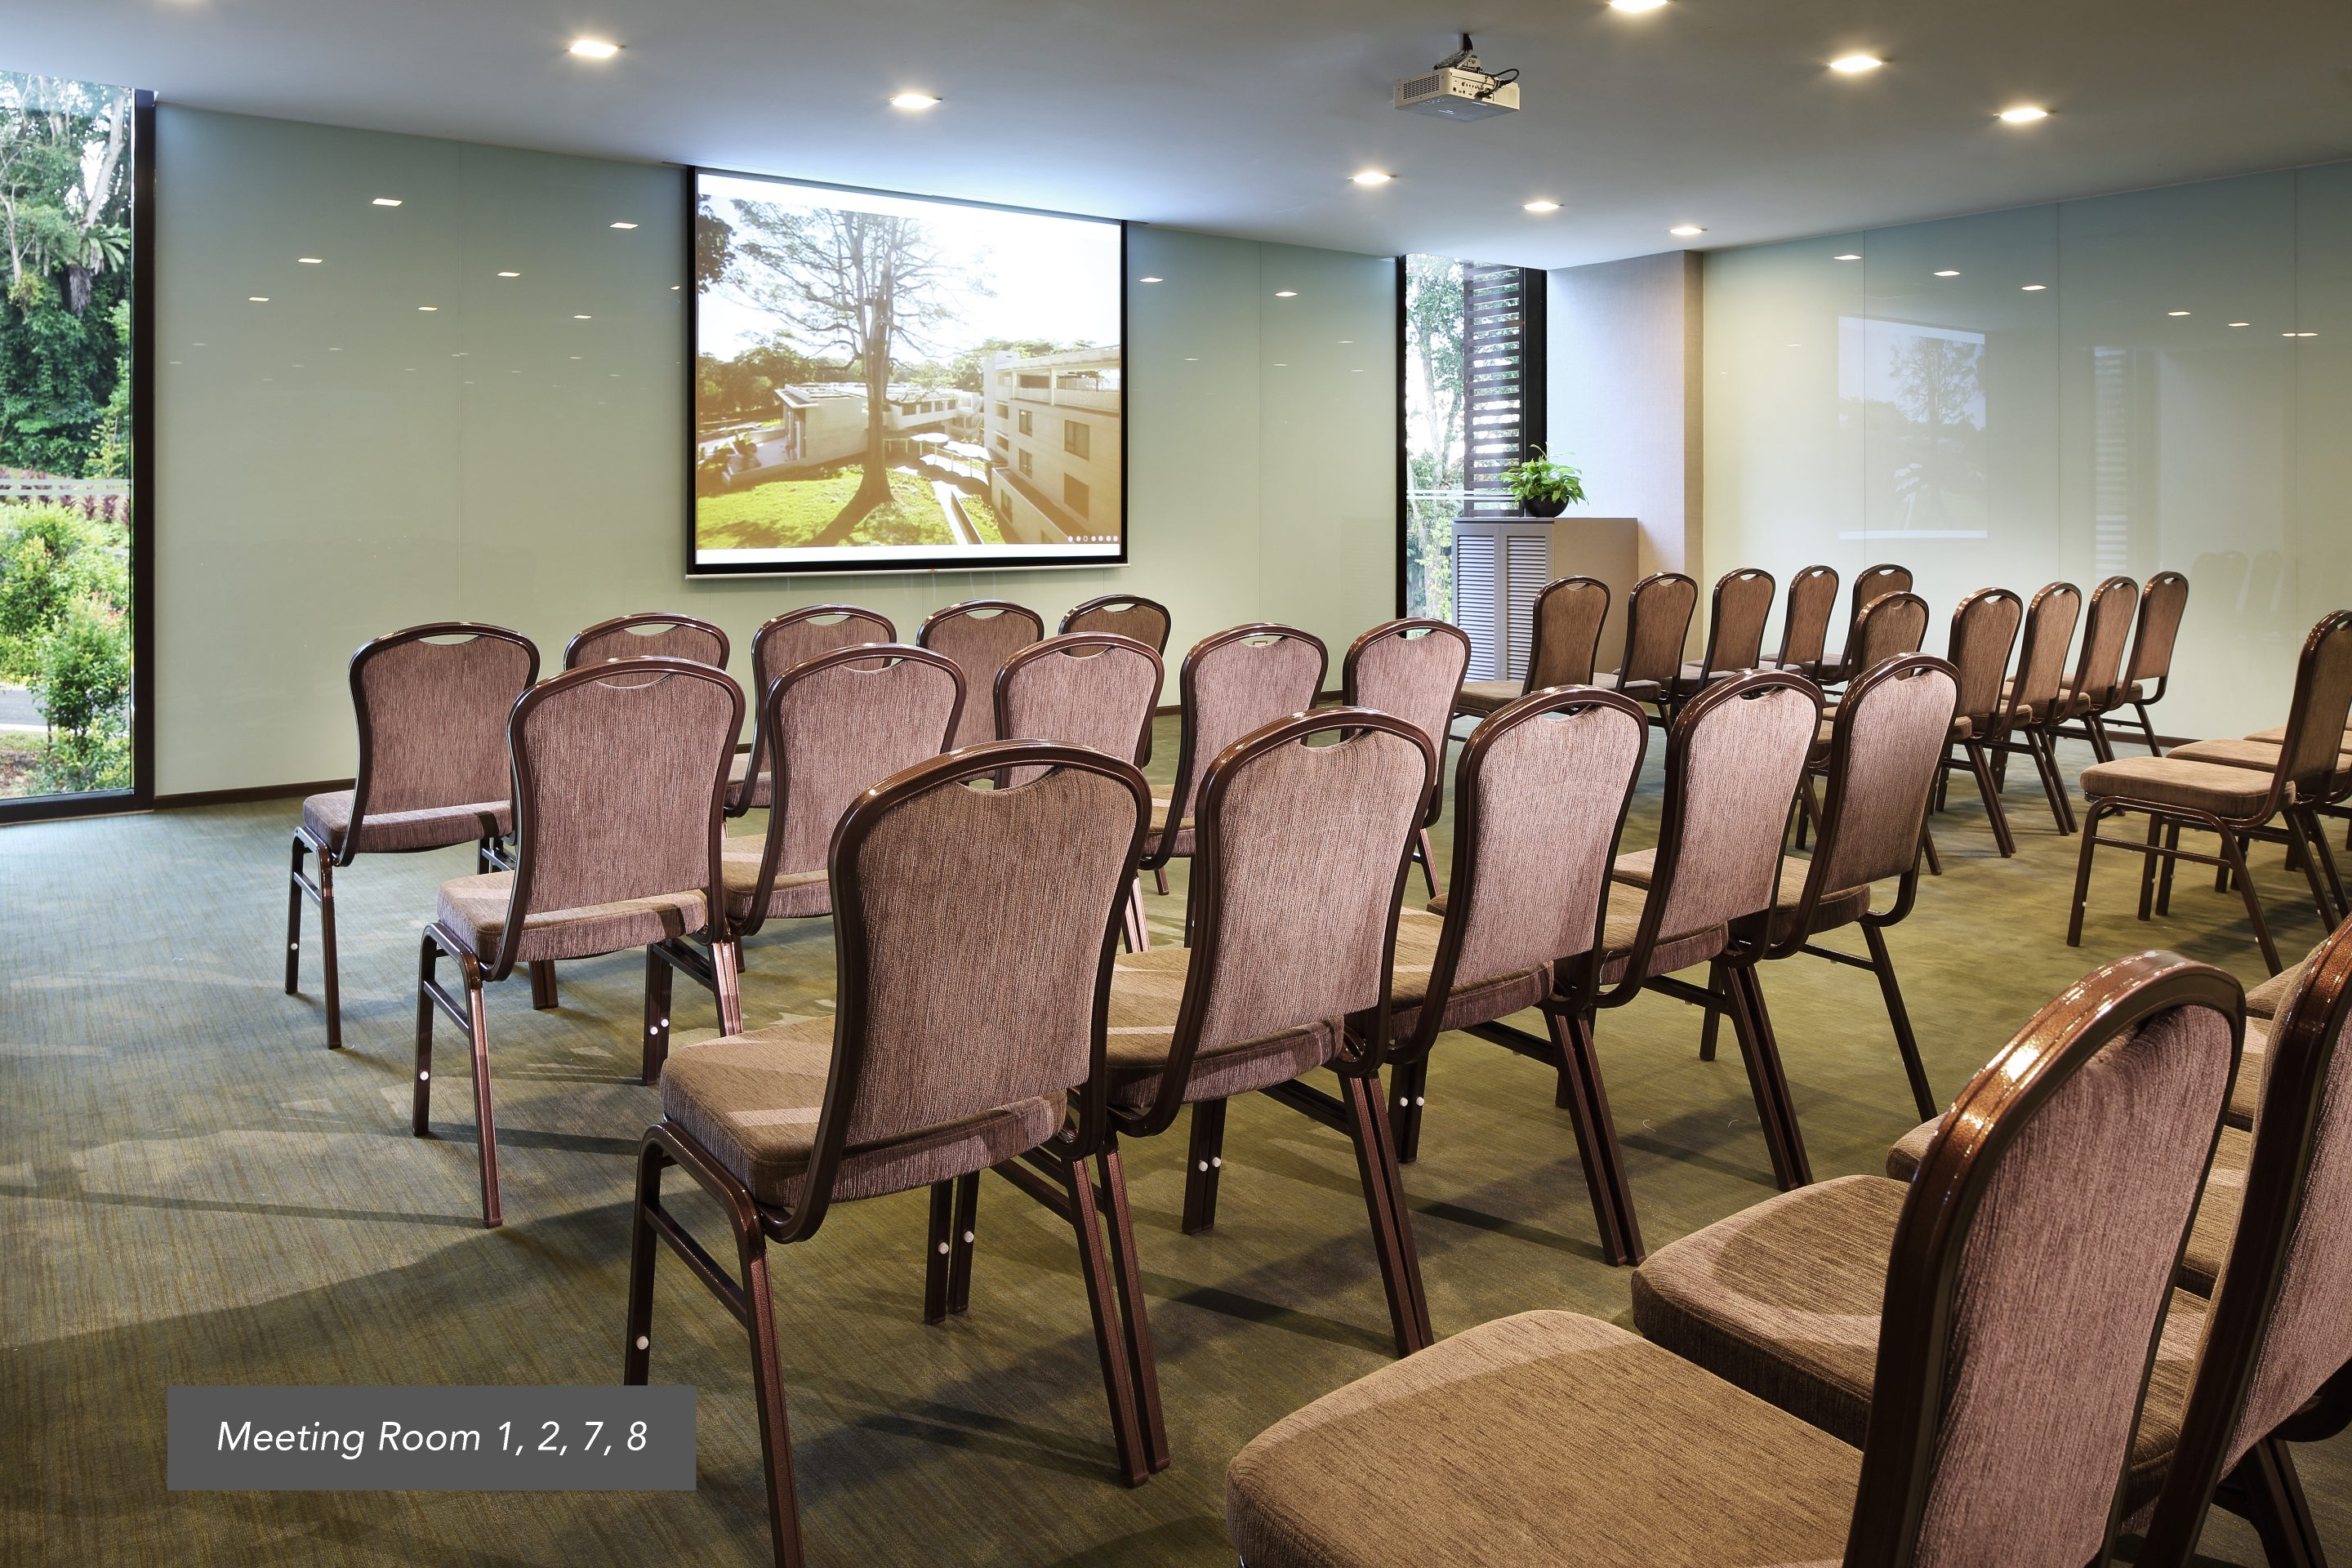 Meeting Room 1,2,7,8